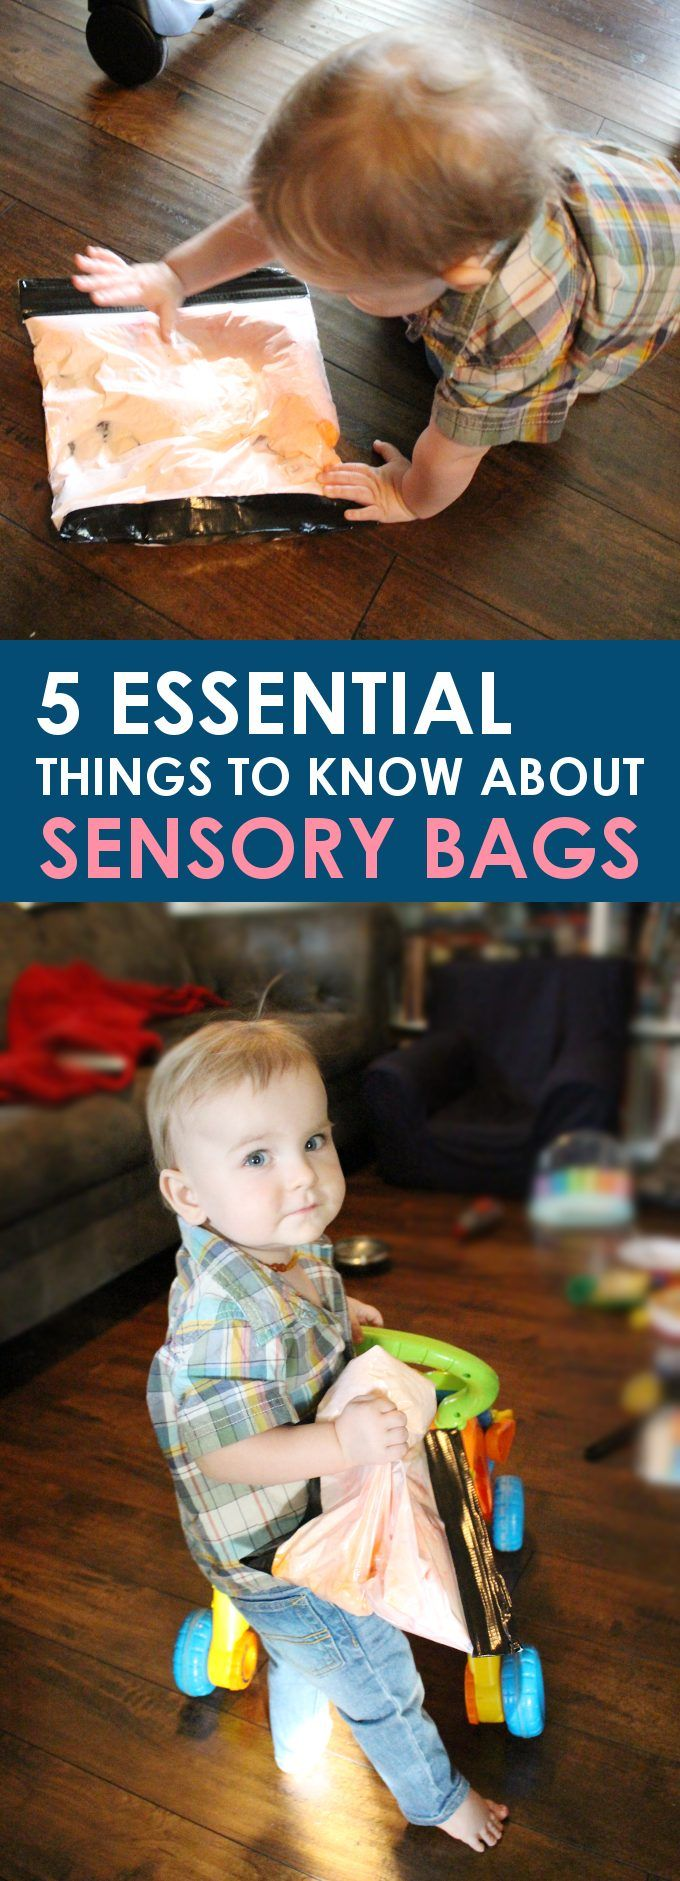 If you have little kids then you've surely heard of sensory bags. Here are 5 things you should know about sensory bags when making your own!